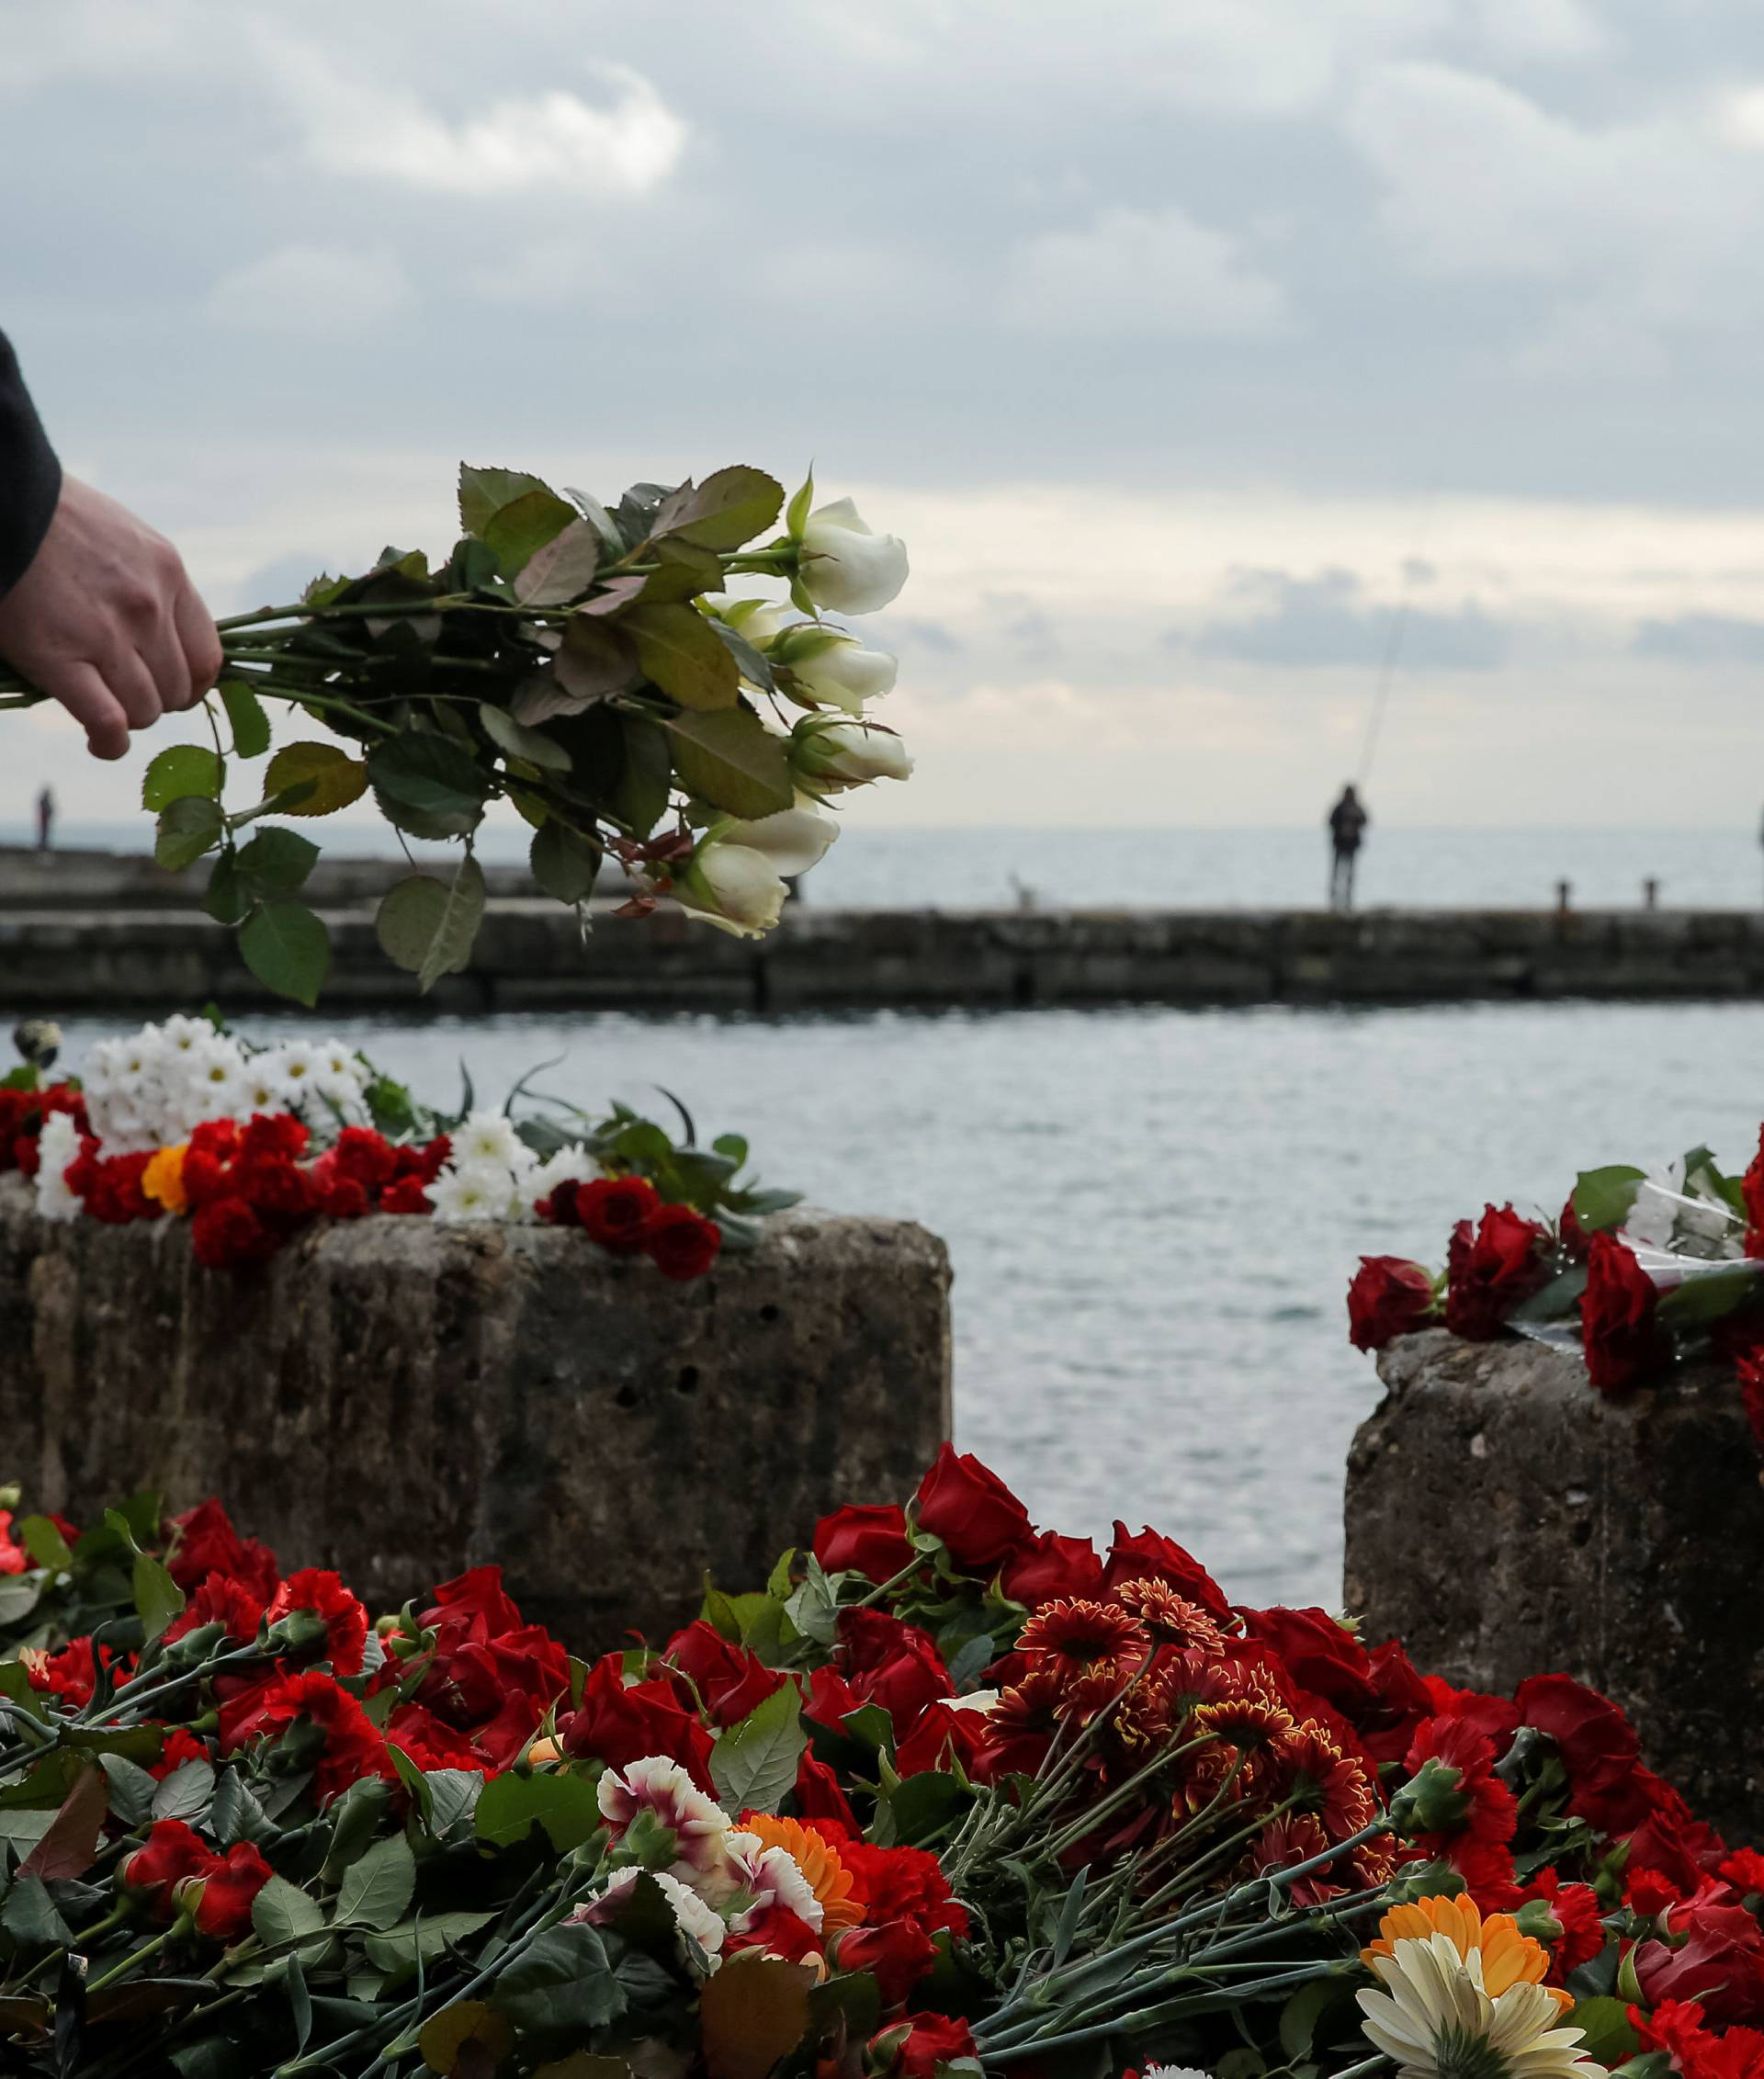 A person lays flowers in memory of passengers and crew members of Russian military Tu-154, which crashed into the Black Sea on its way to Syria on Sunday, at an embankment in the Black Sea resort city of Sochi